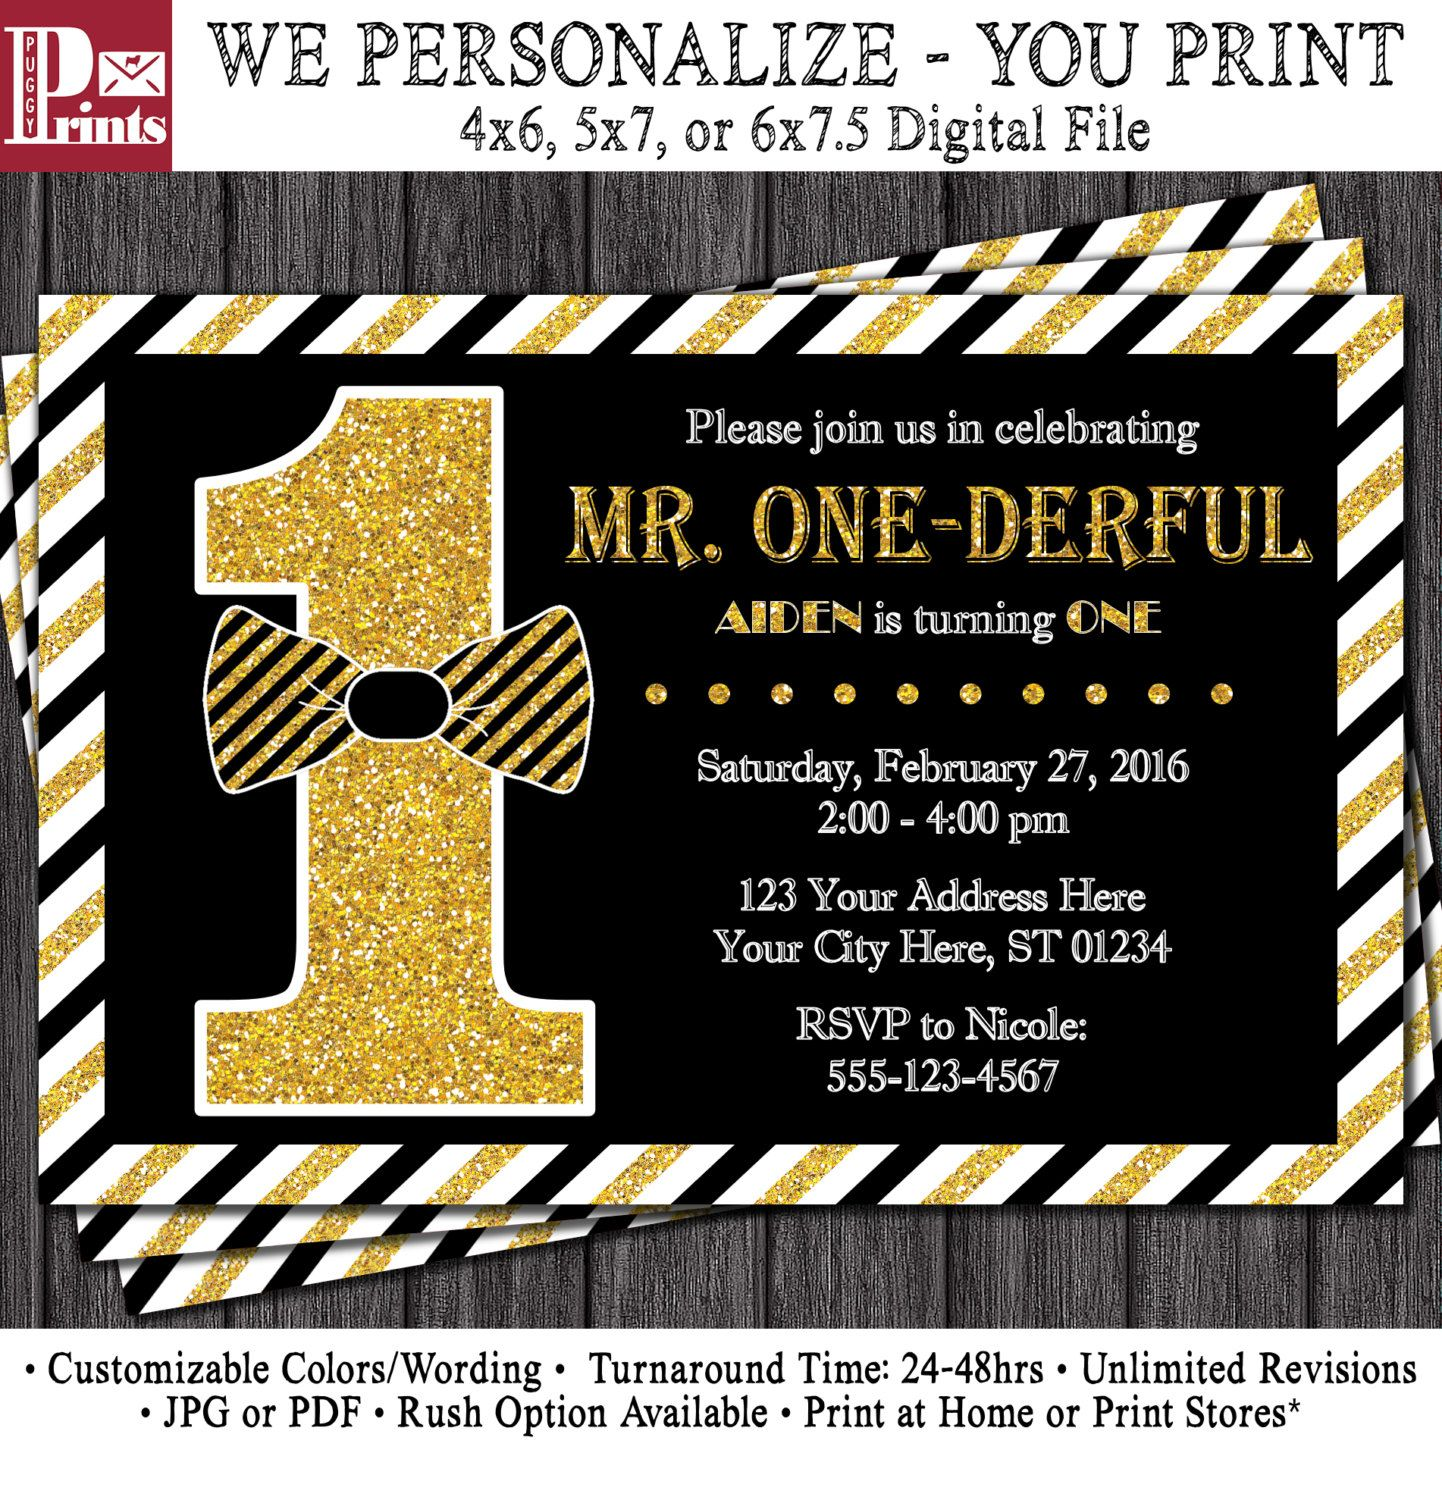 Mr. ONEderful Birthday Invitation • Mr One-derful Tuxedo Birthday ...